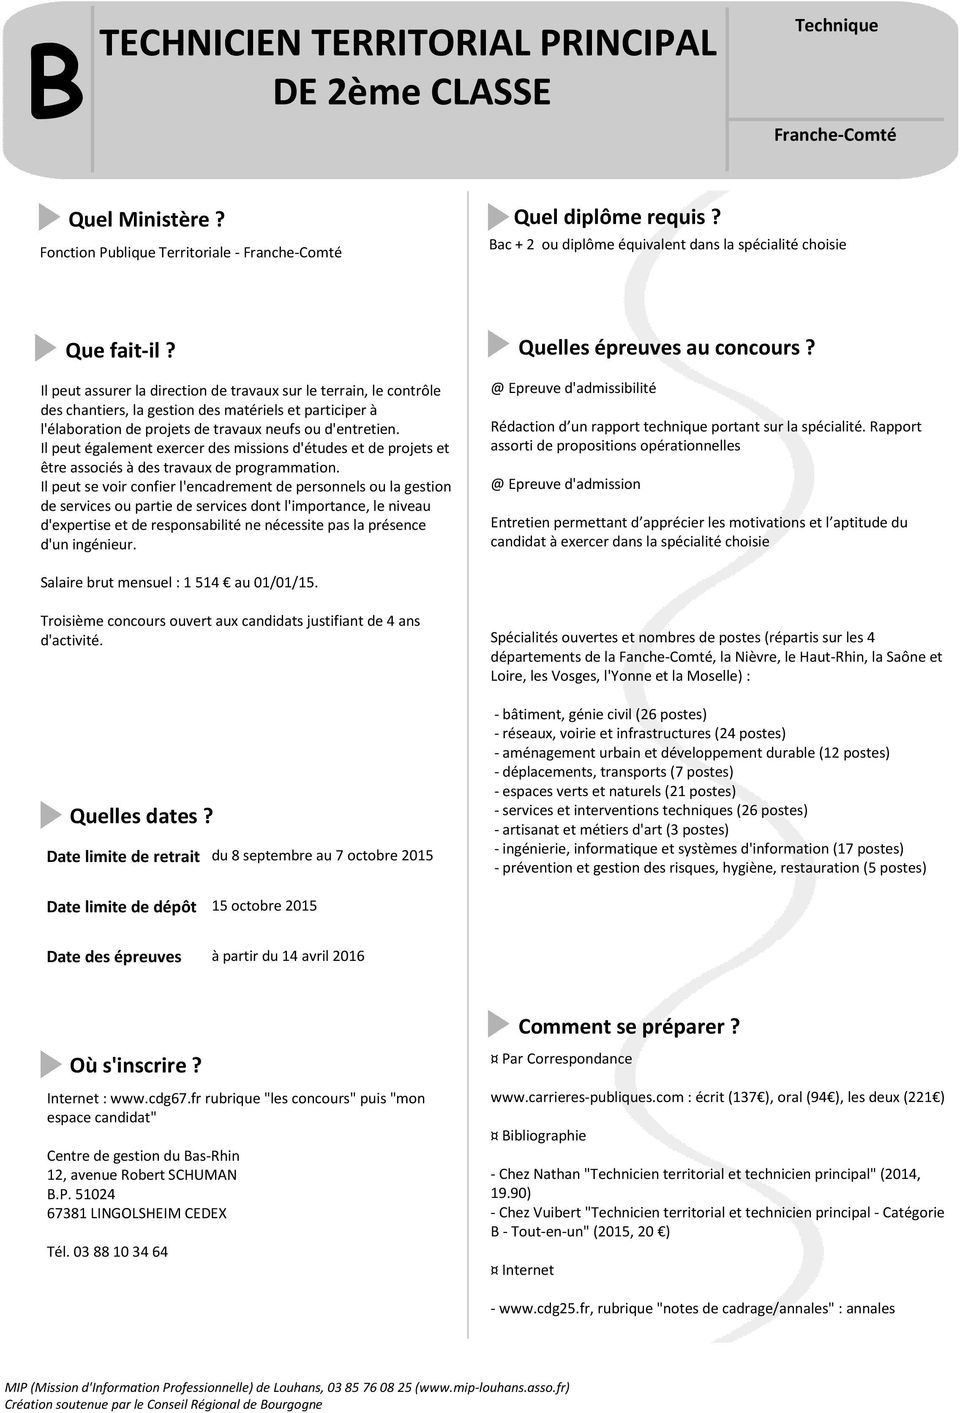 Adjoint technique de 1 re classe pdf - Grille indiciaire technicien principal 2eme classe ...